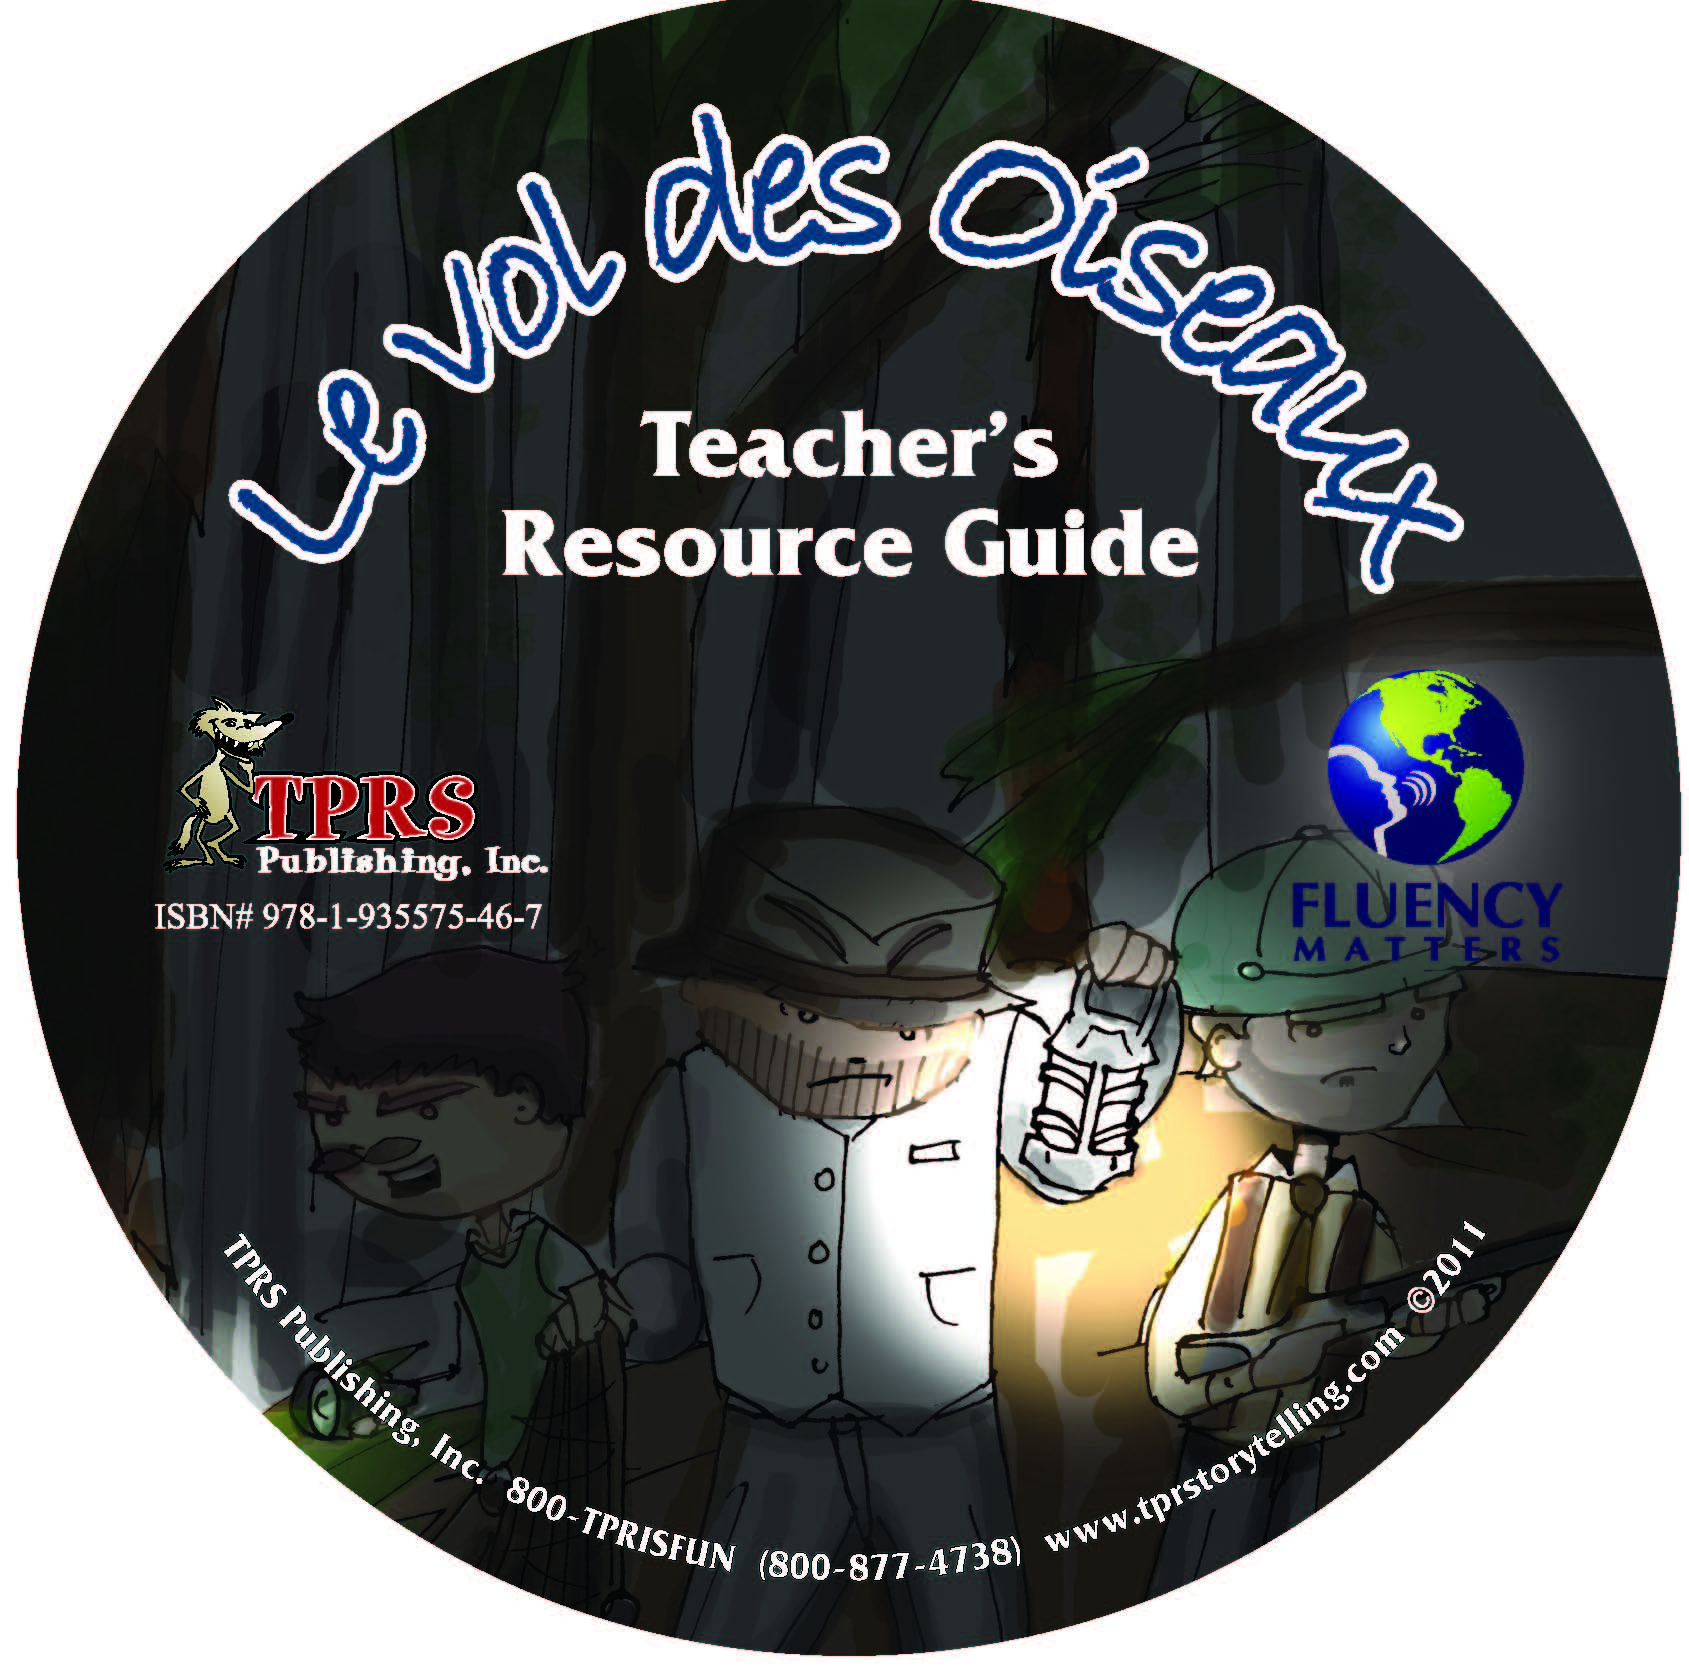 Vol de Oiseaux – Teacher's Guide on CD